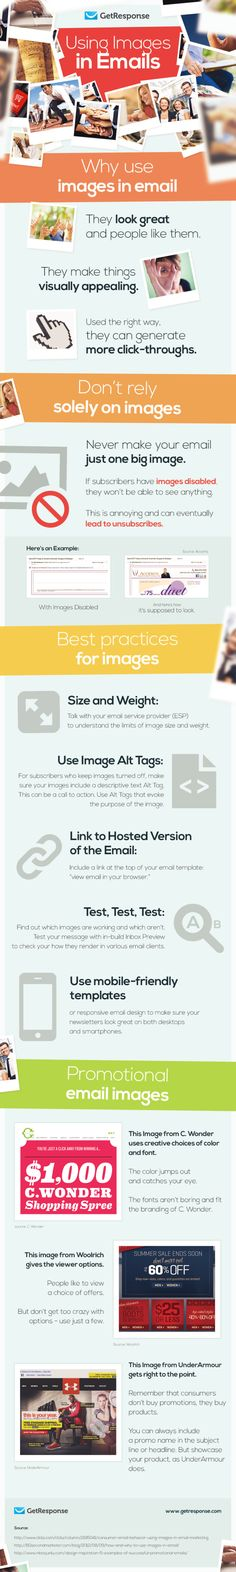 Using Images in Emails   #EmailMarketing #Email #Marketing #infographic